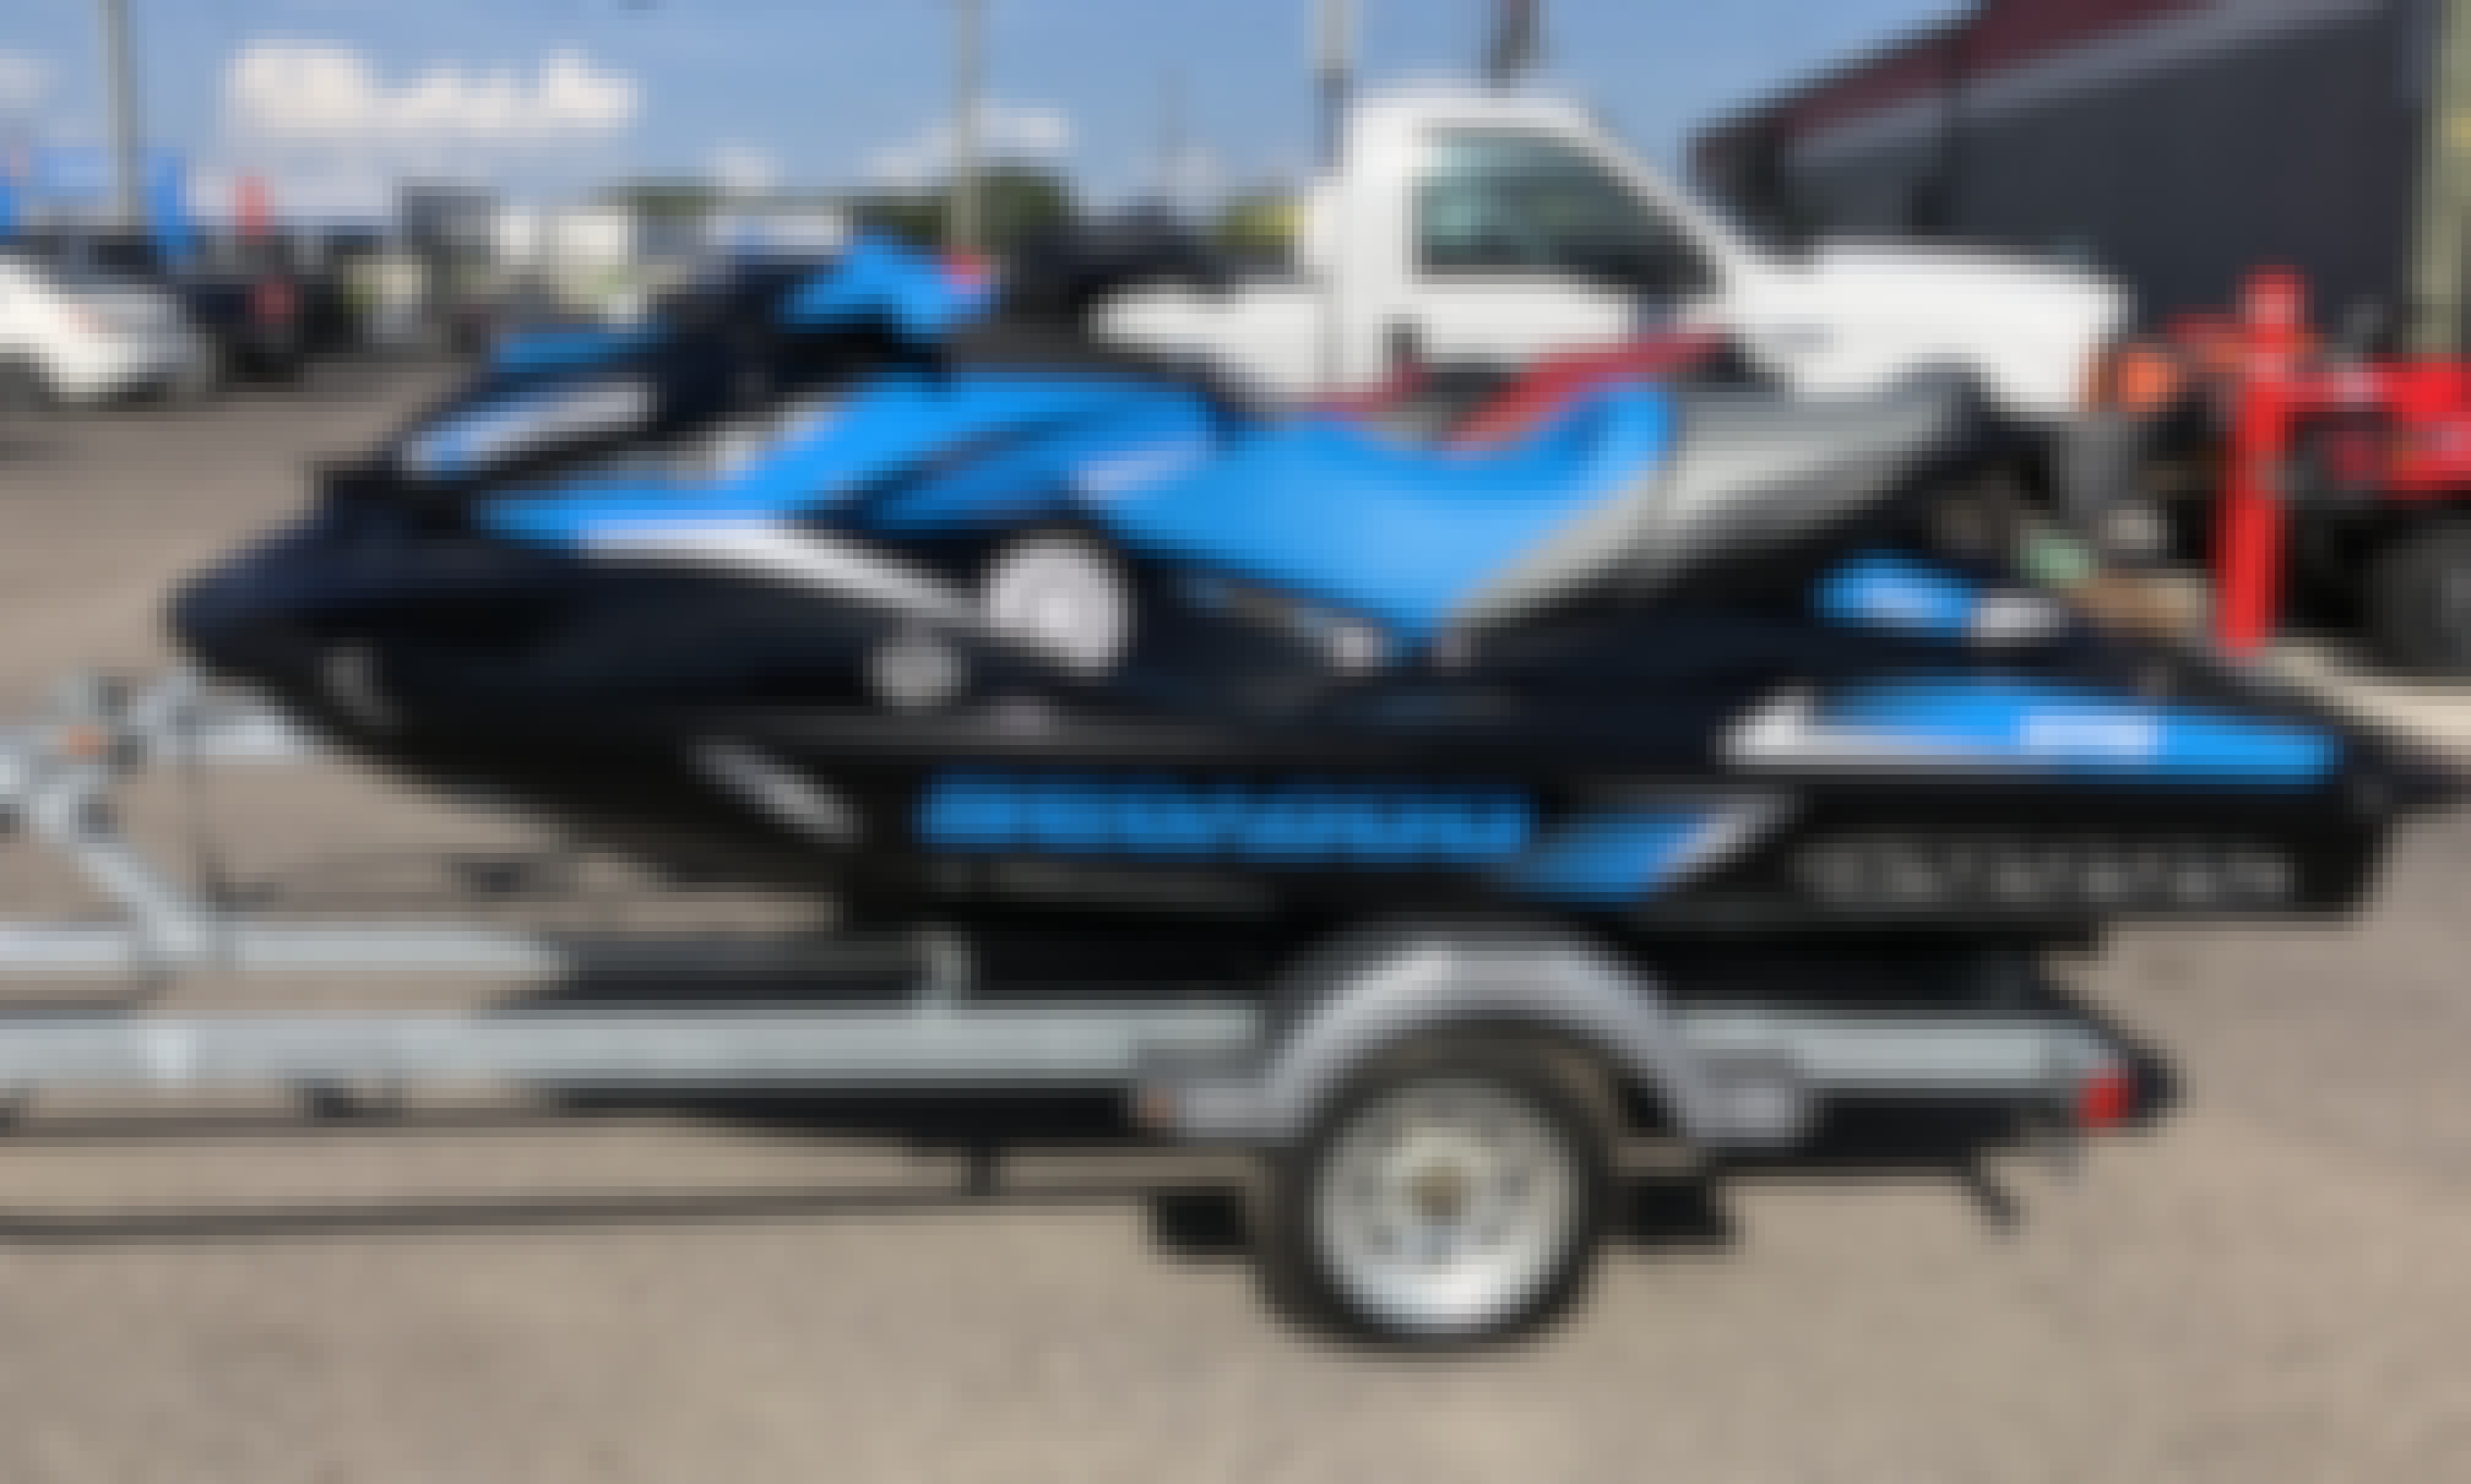 Rent this Sea Doo 230 Jet Ski for 3 People in Tampa, Clearwater, and Melbourne, Florida